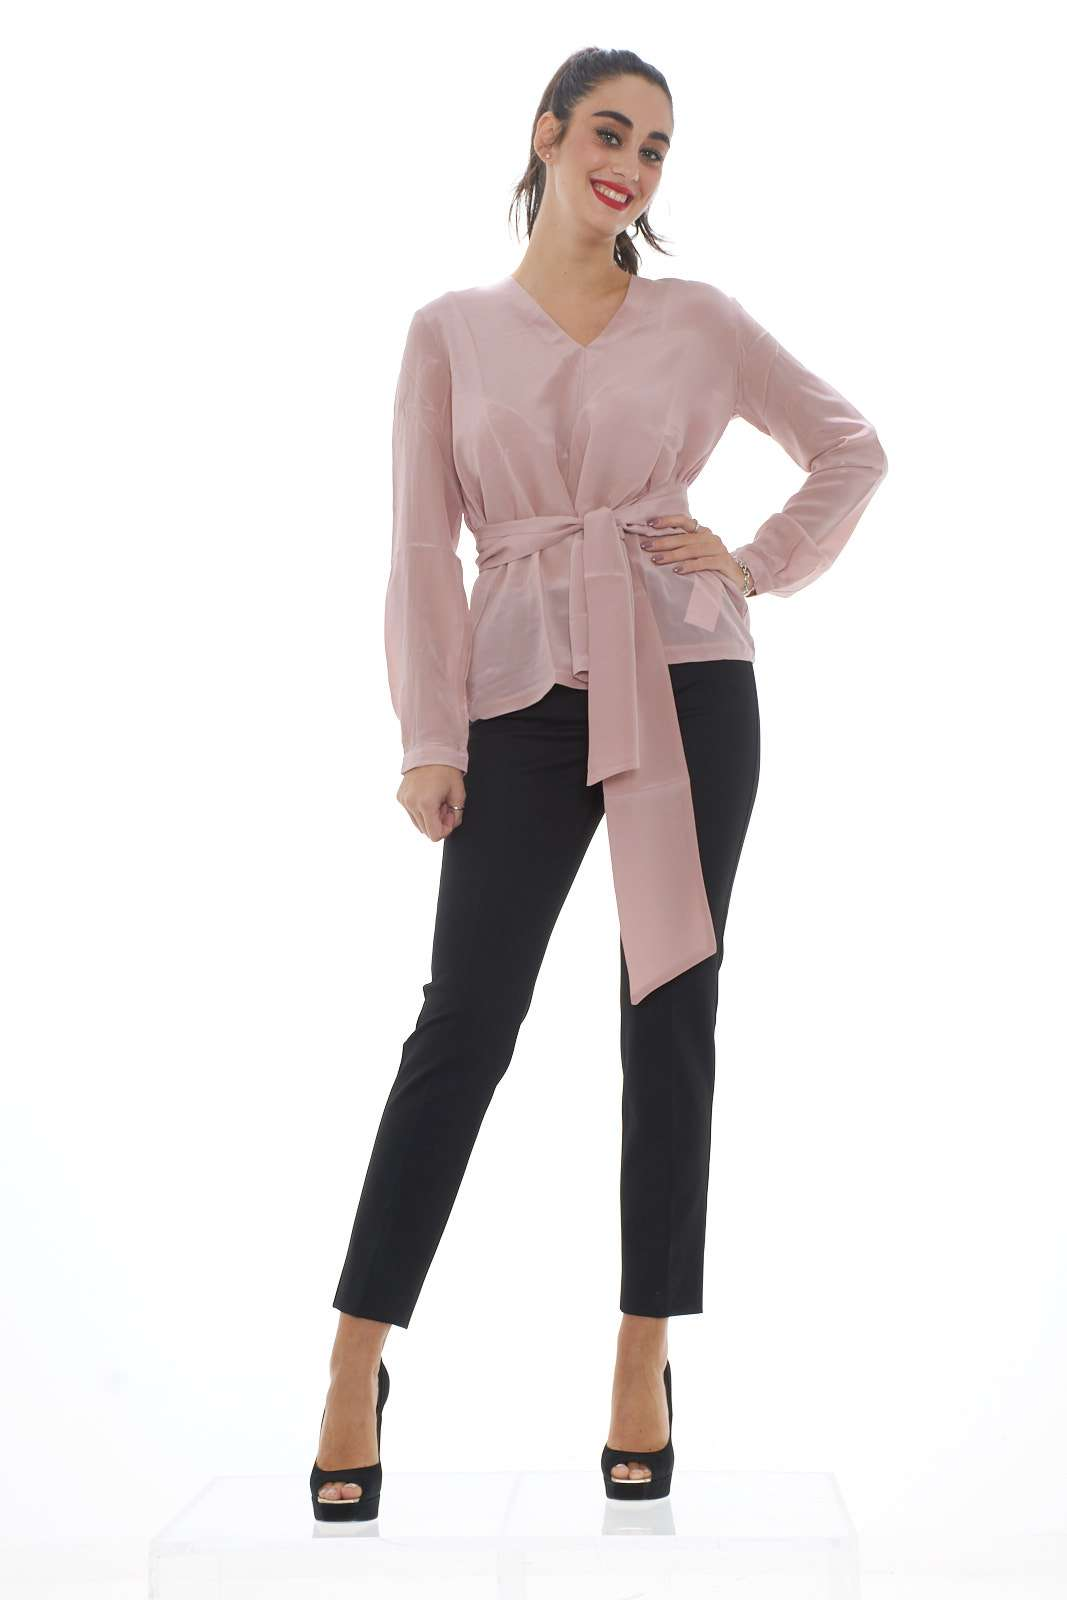 https://www.parmax.com/media/catalog/product/a/i/ai-outlet_parmax-blusa-donna-maxmara-aguzzo-d.jpg